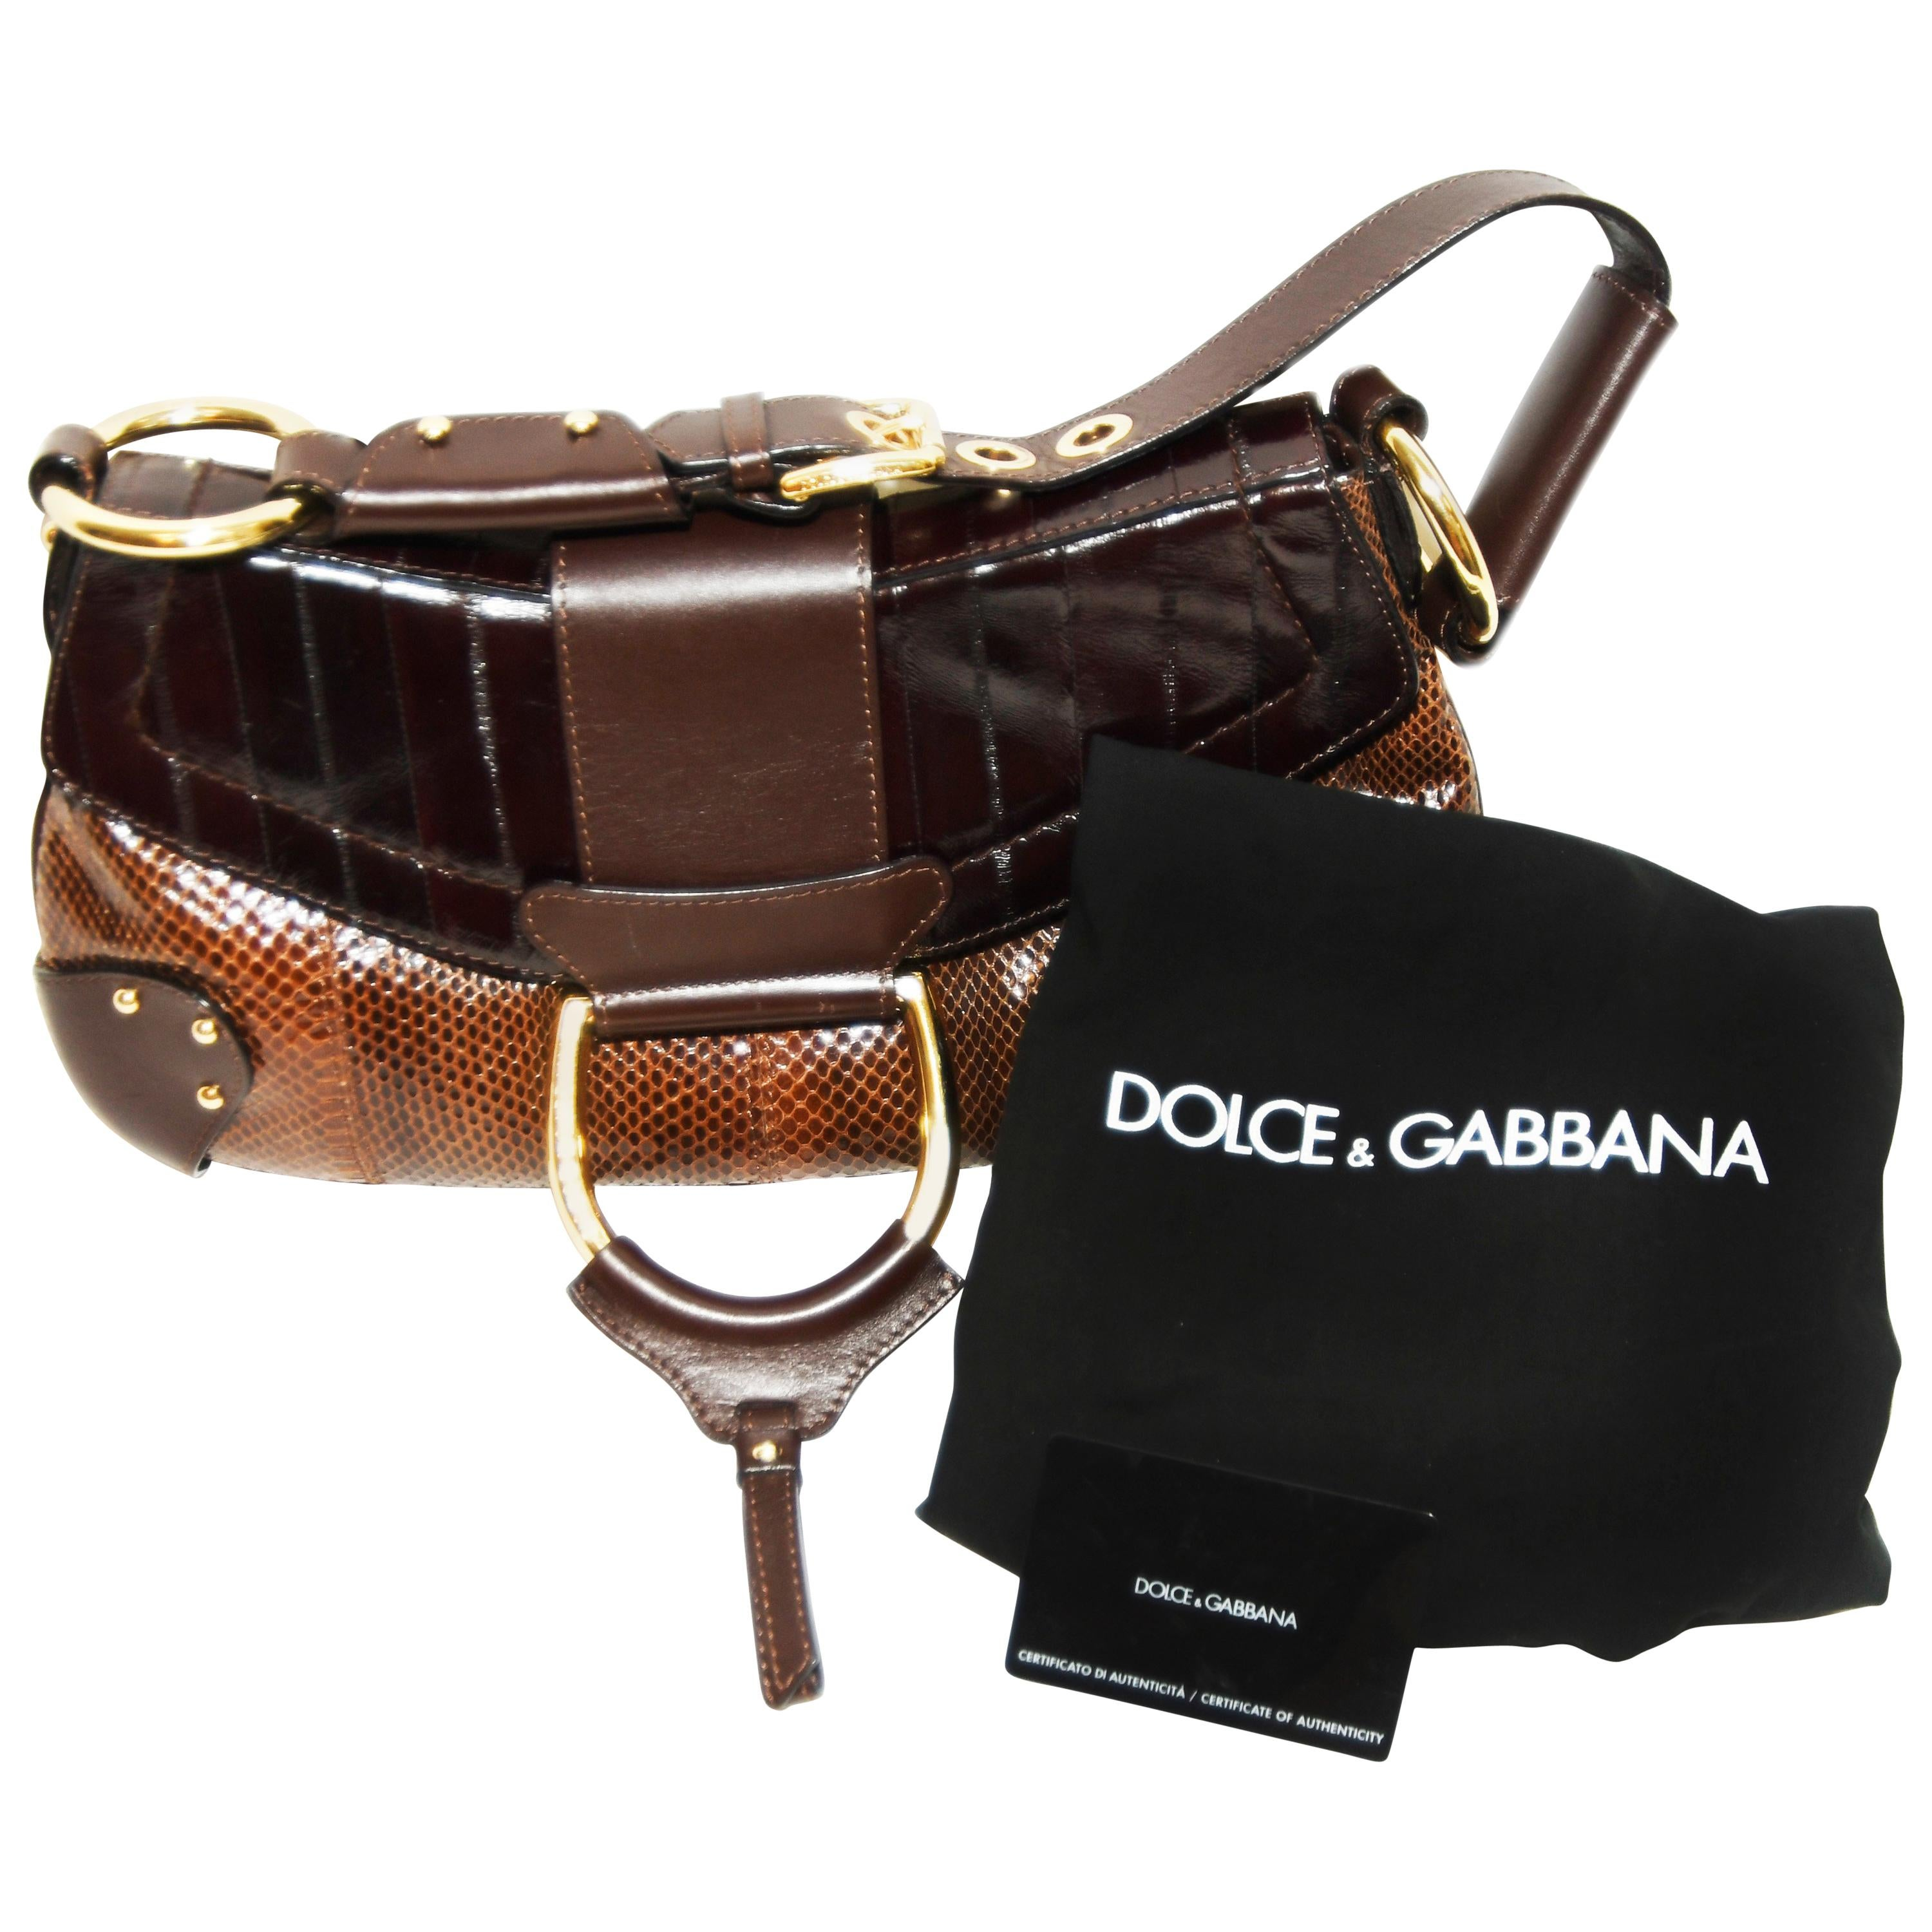 d86ef5f717 Dolce and Gabbana Top Handle Reptile and Leather Brown Bag For Sale at  1stdibs